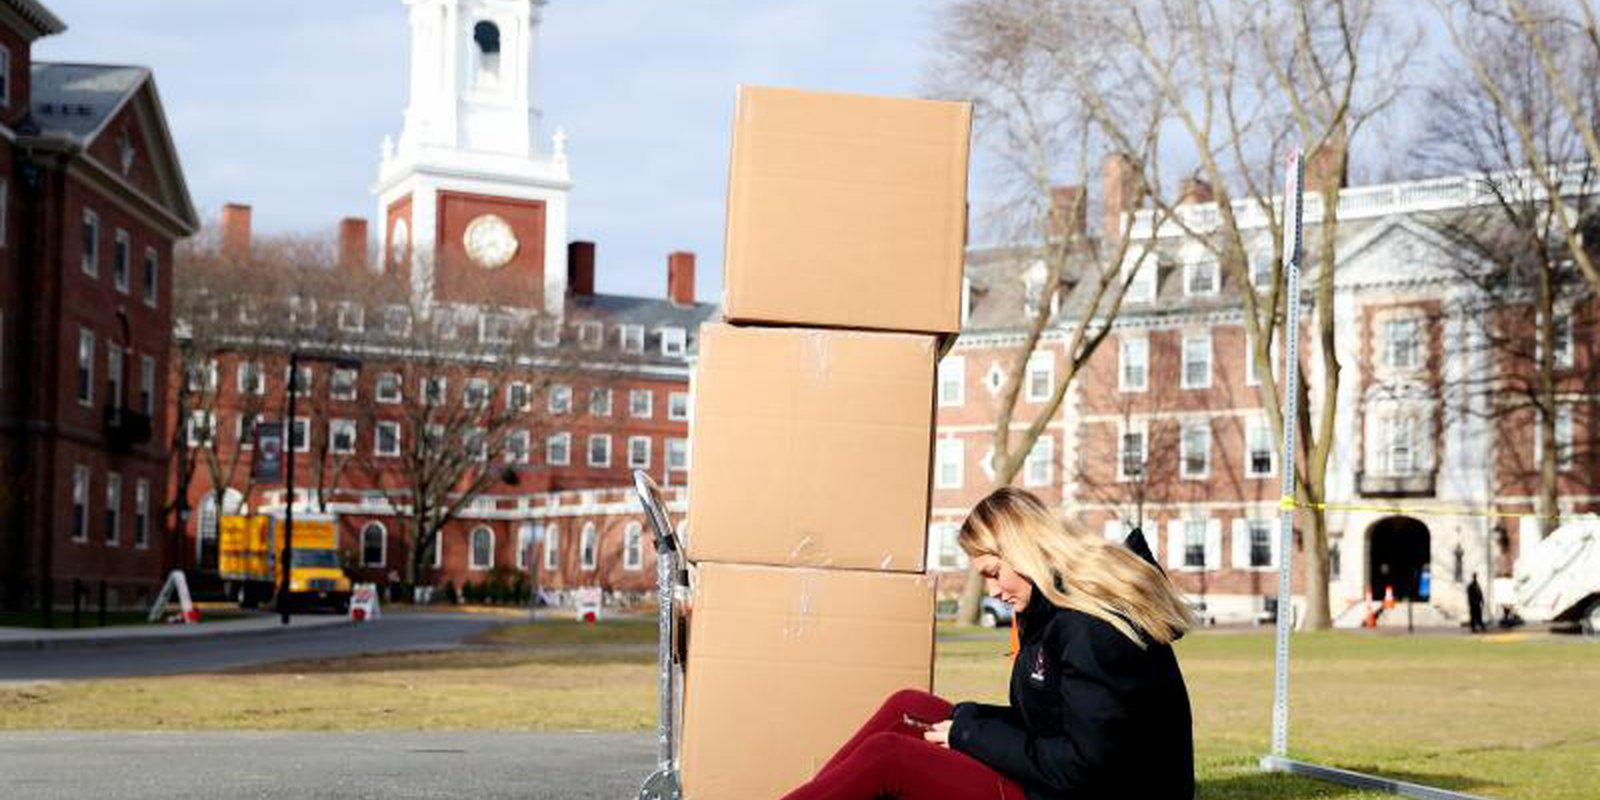 Harvard asked its students to move out of their dorms due to the coronavirus risk, with all classes moving online. Photo by Maddie Meyer/Getty Images.